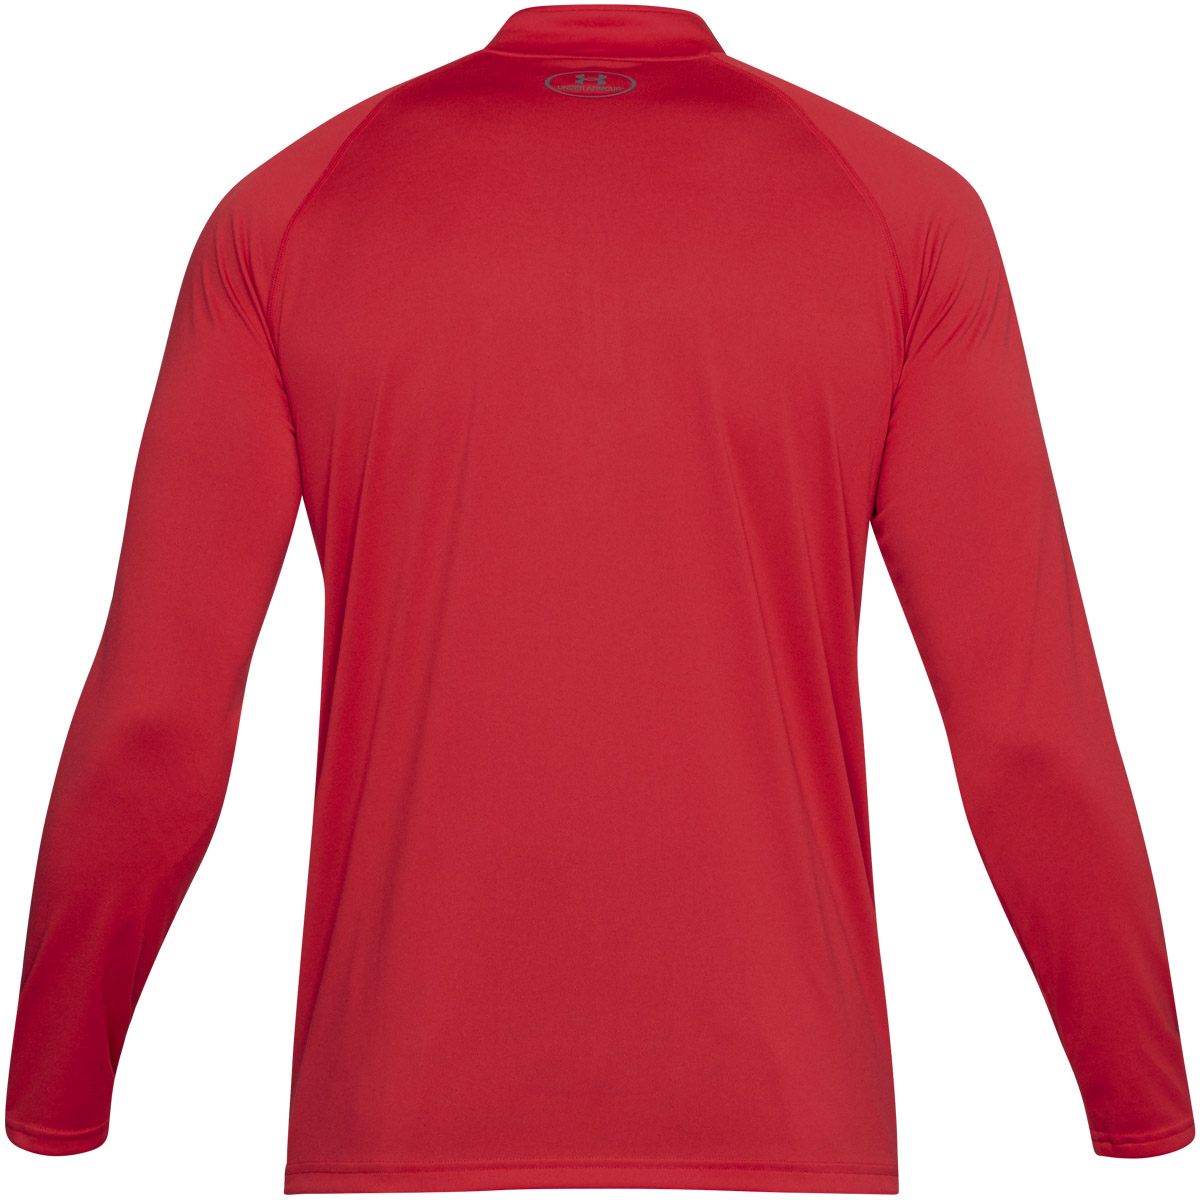 Under-Armour-Mens-UA-Tech-1-4-Zip-Long-Sleeve-Top-Workout-Layer-27-OFF-RRP thumbnail 65